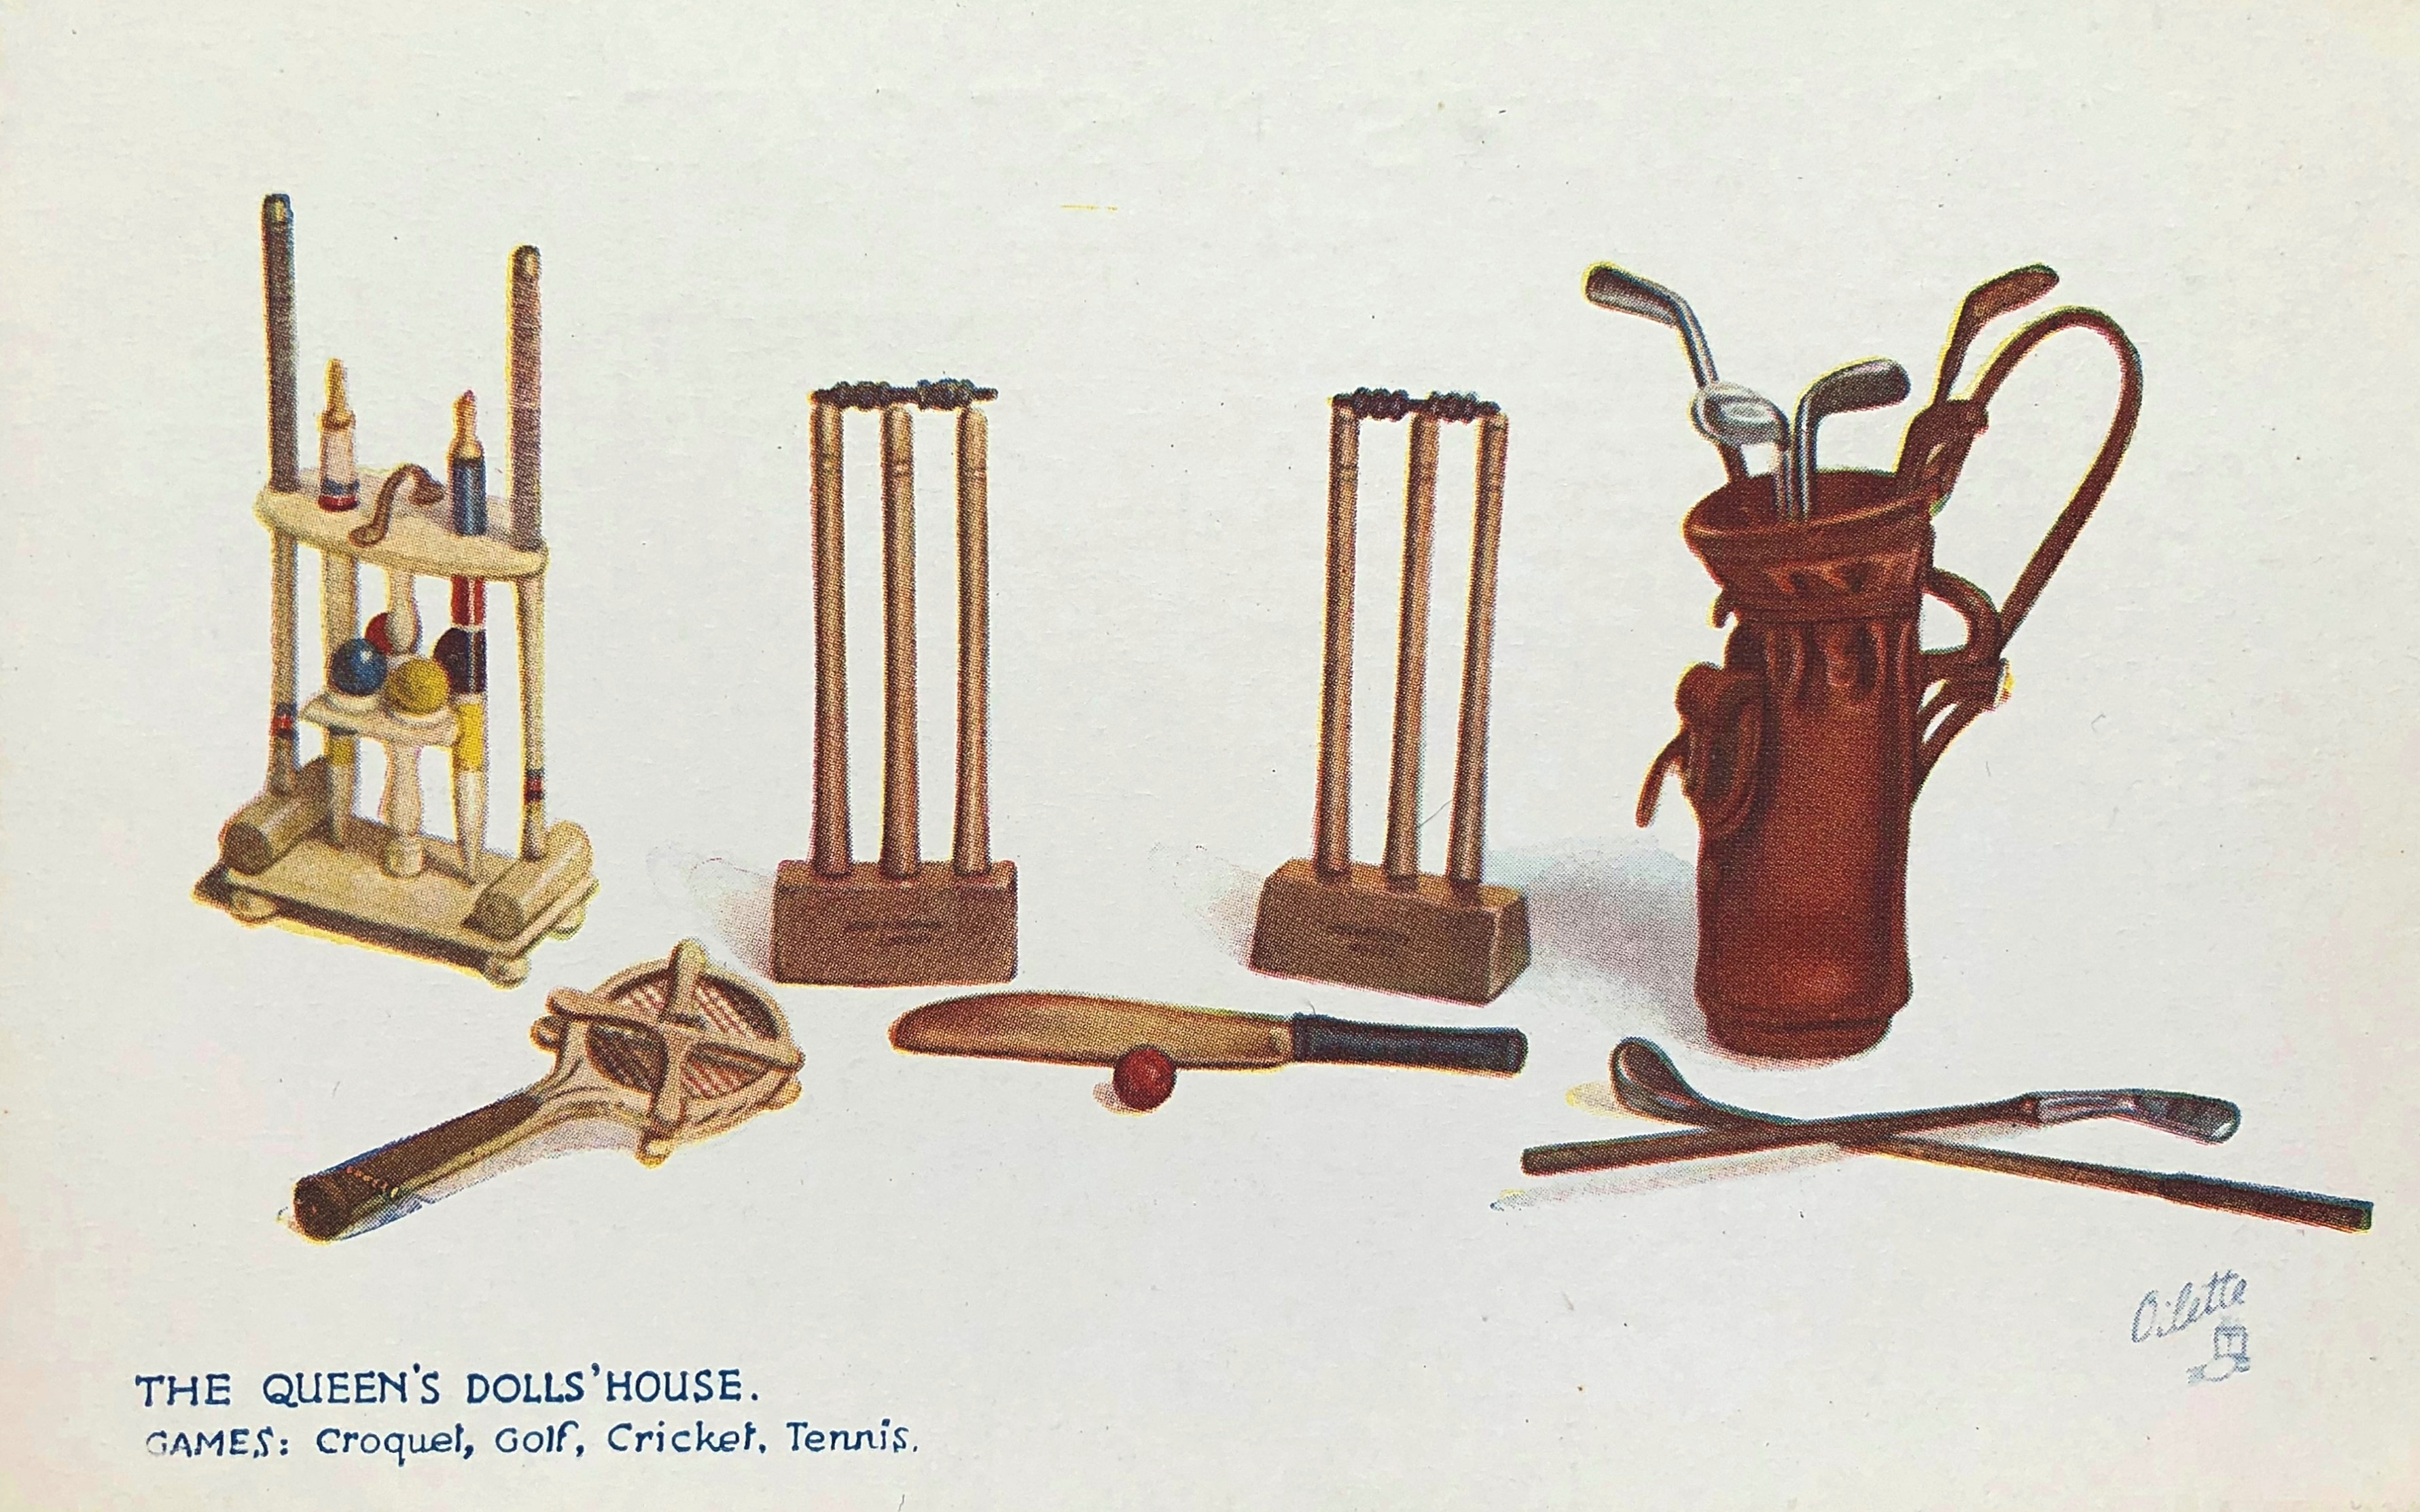 The miniature wooden golf clubs made by Charles Gibson for Queen Mary\'s Dolls\' House